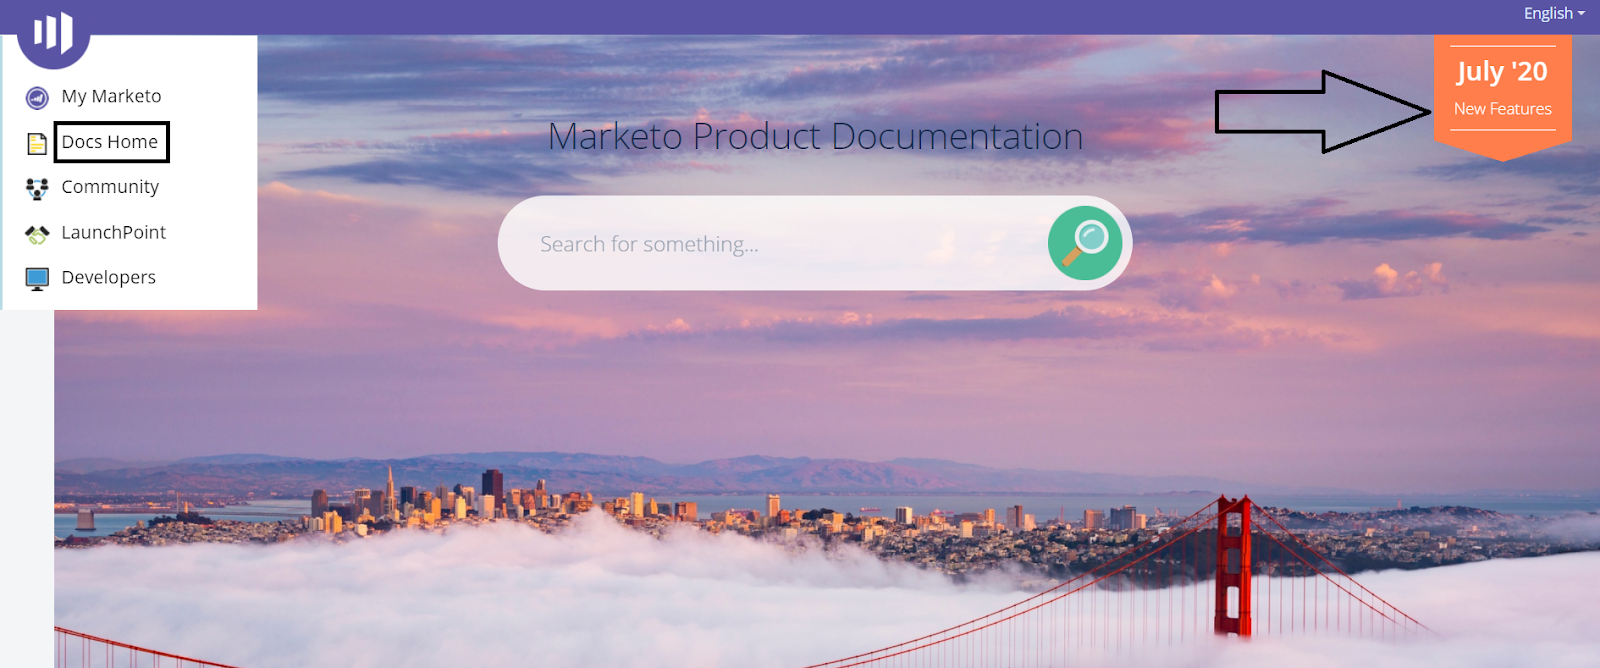 Marketo product documentation